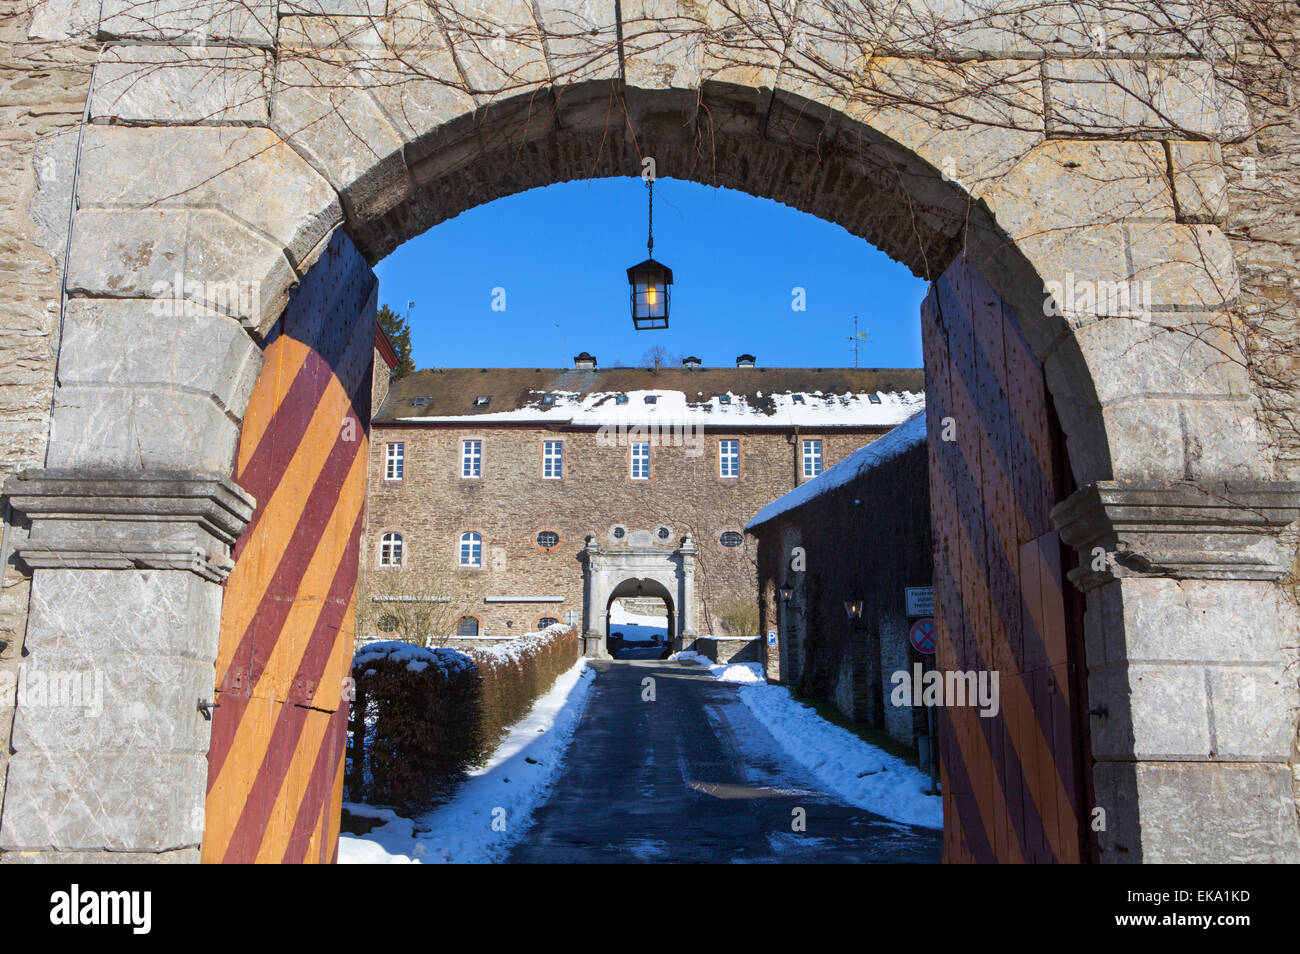 Burg Schnellenberg Castle, Hanseatic City of Attendorn, Sauerland region, North Rhine-Westphalia, Germany, Europe Stock Photo